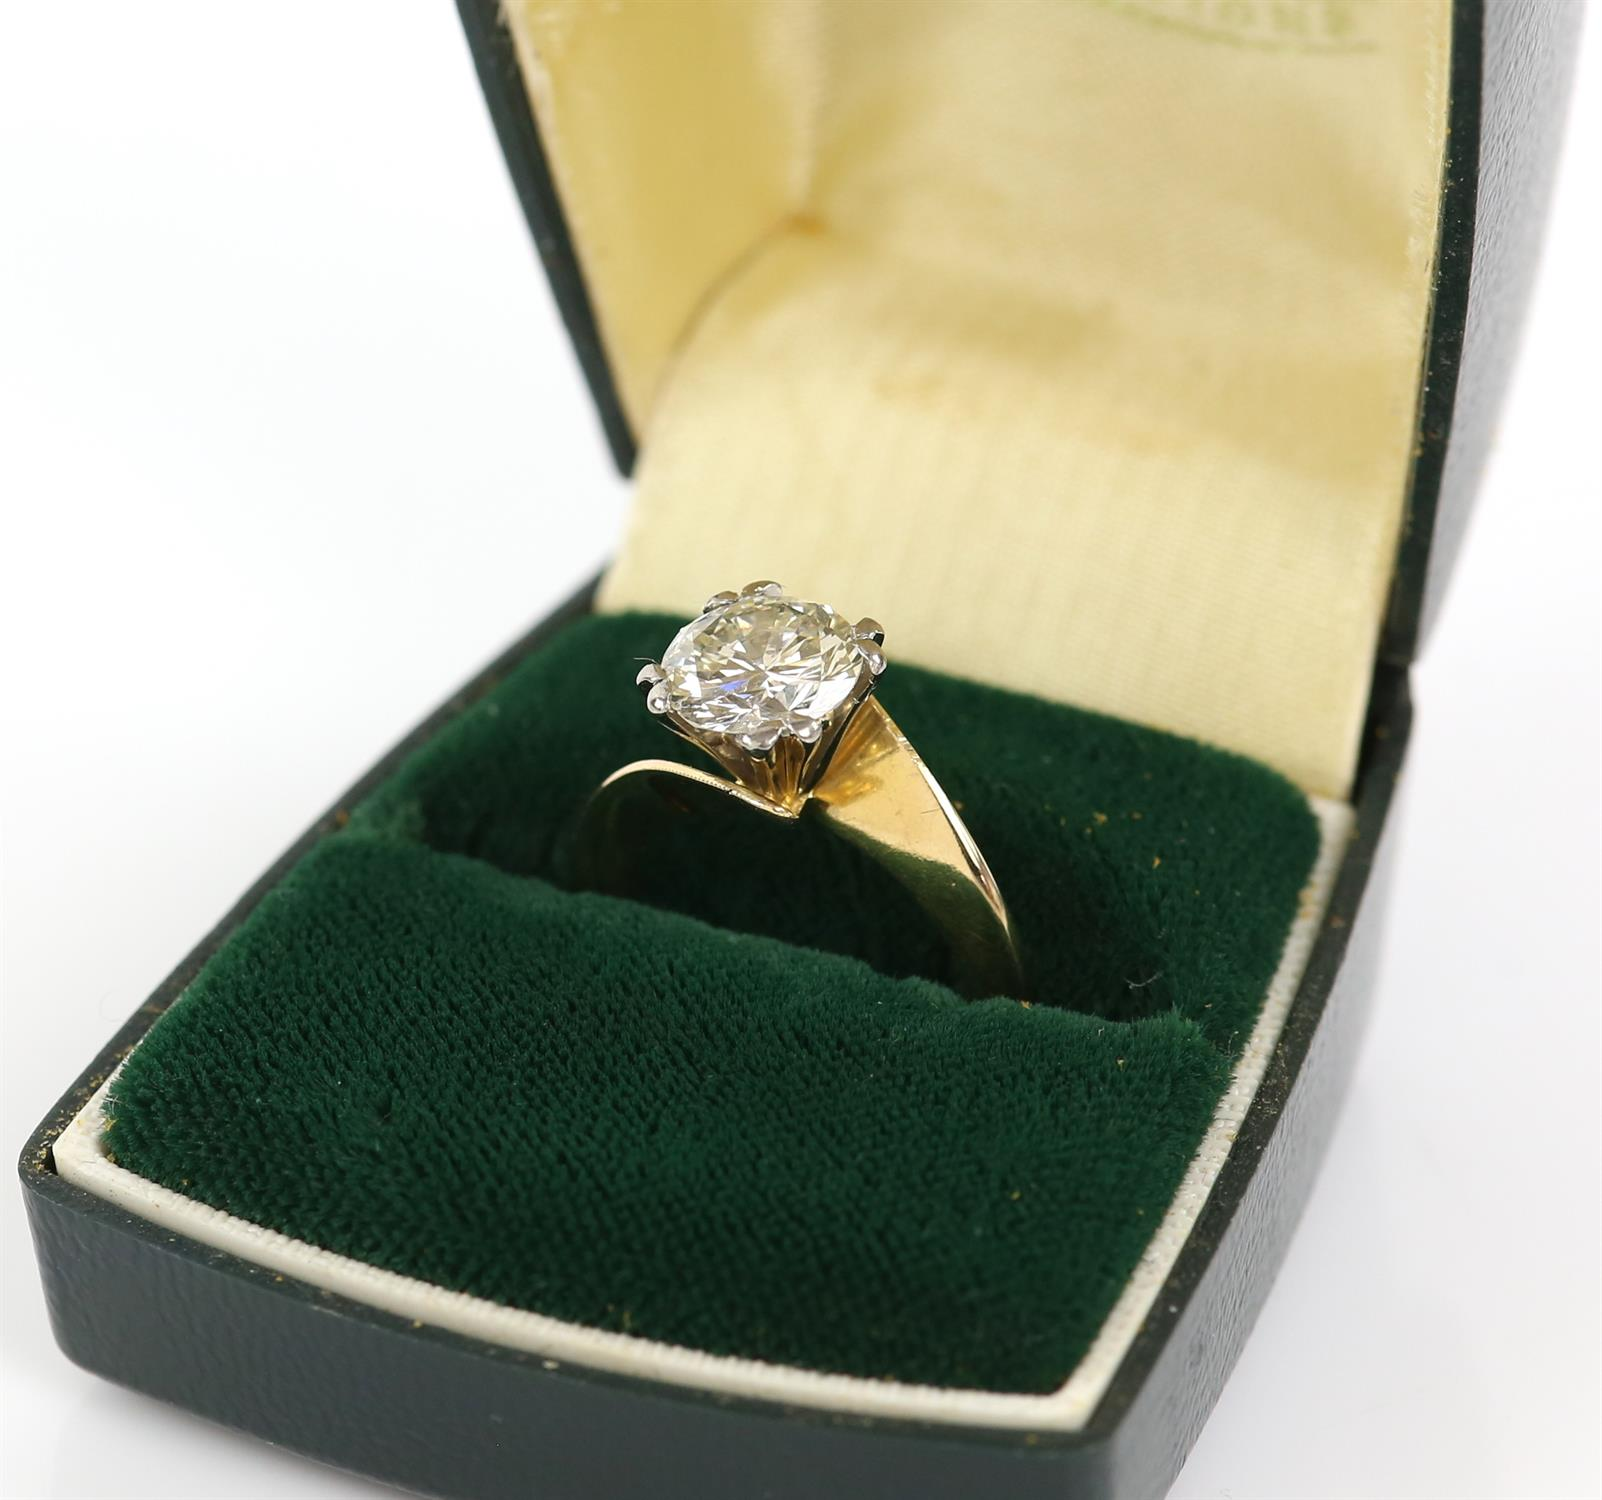 Single stone diamond ring, round brilliant cut diamond weighing an estimated 2.02 carats, - Image 5 of 6